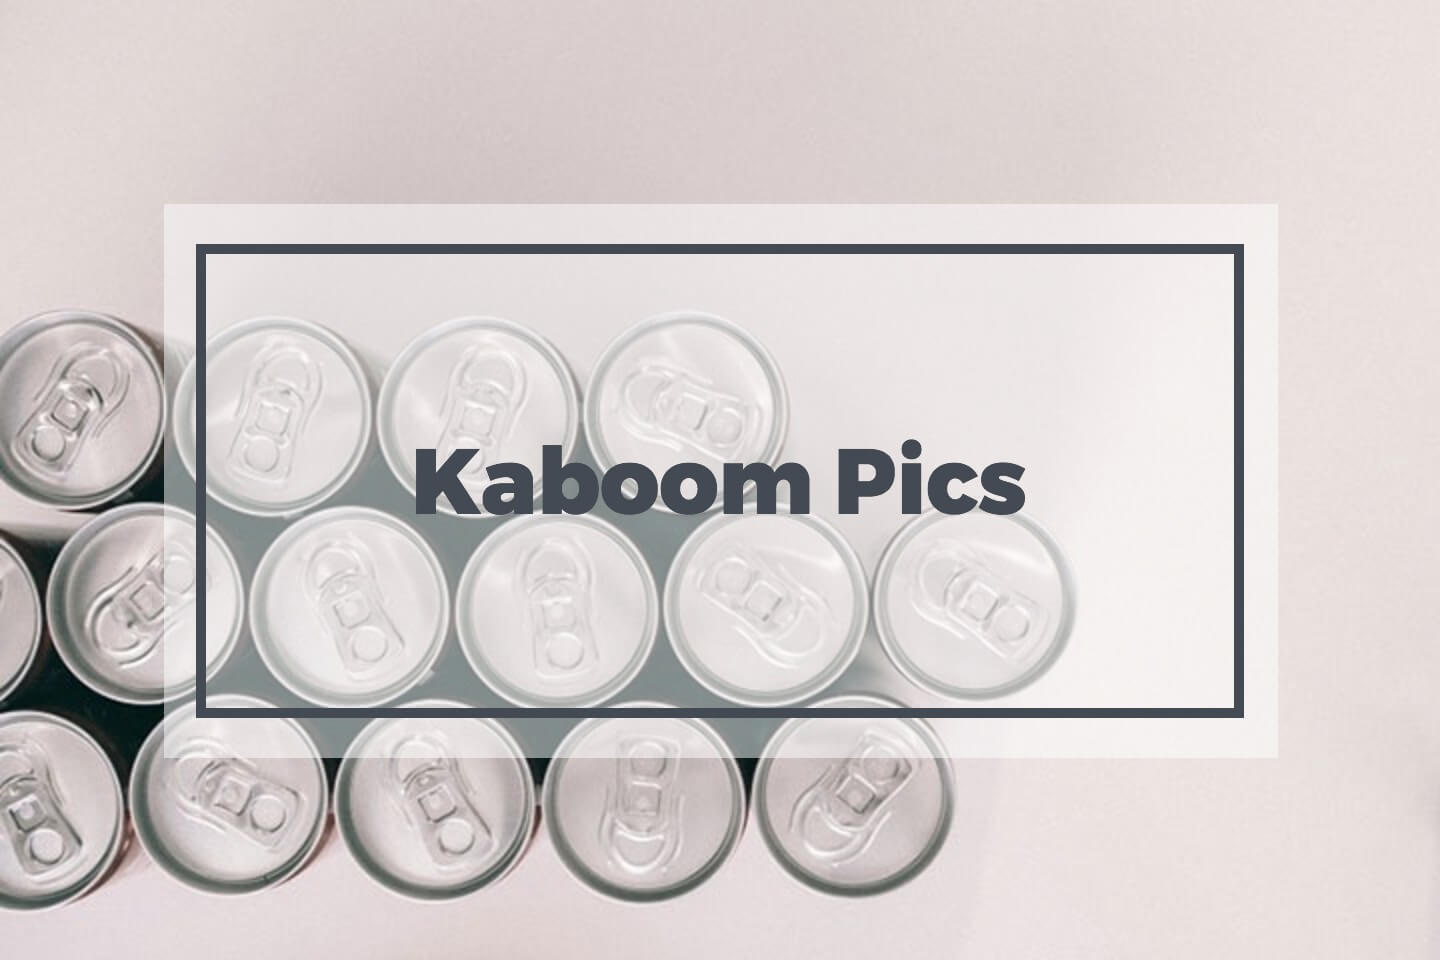 Kaboom Pics stock photos